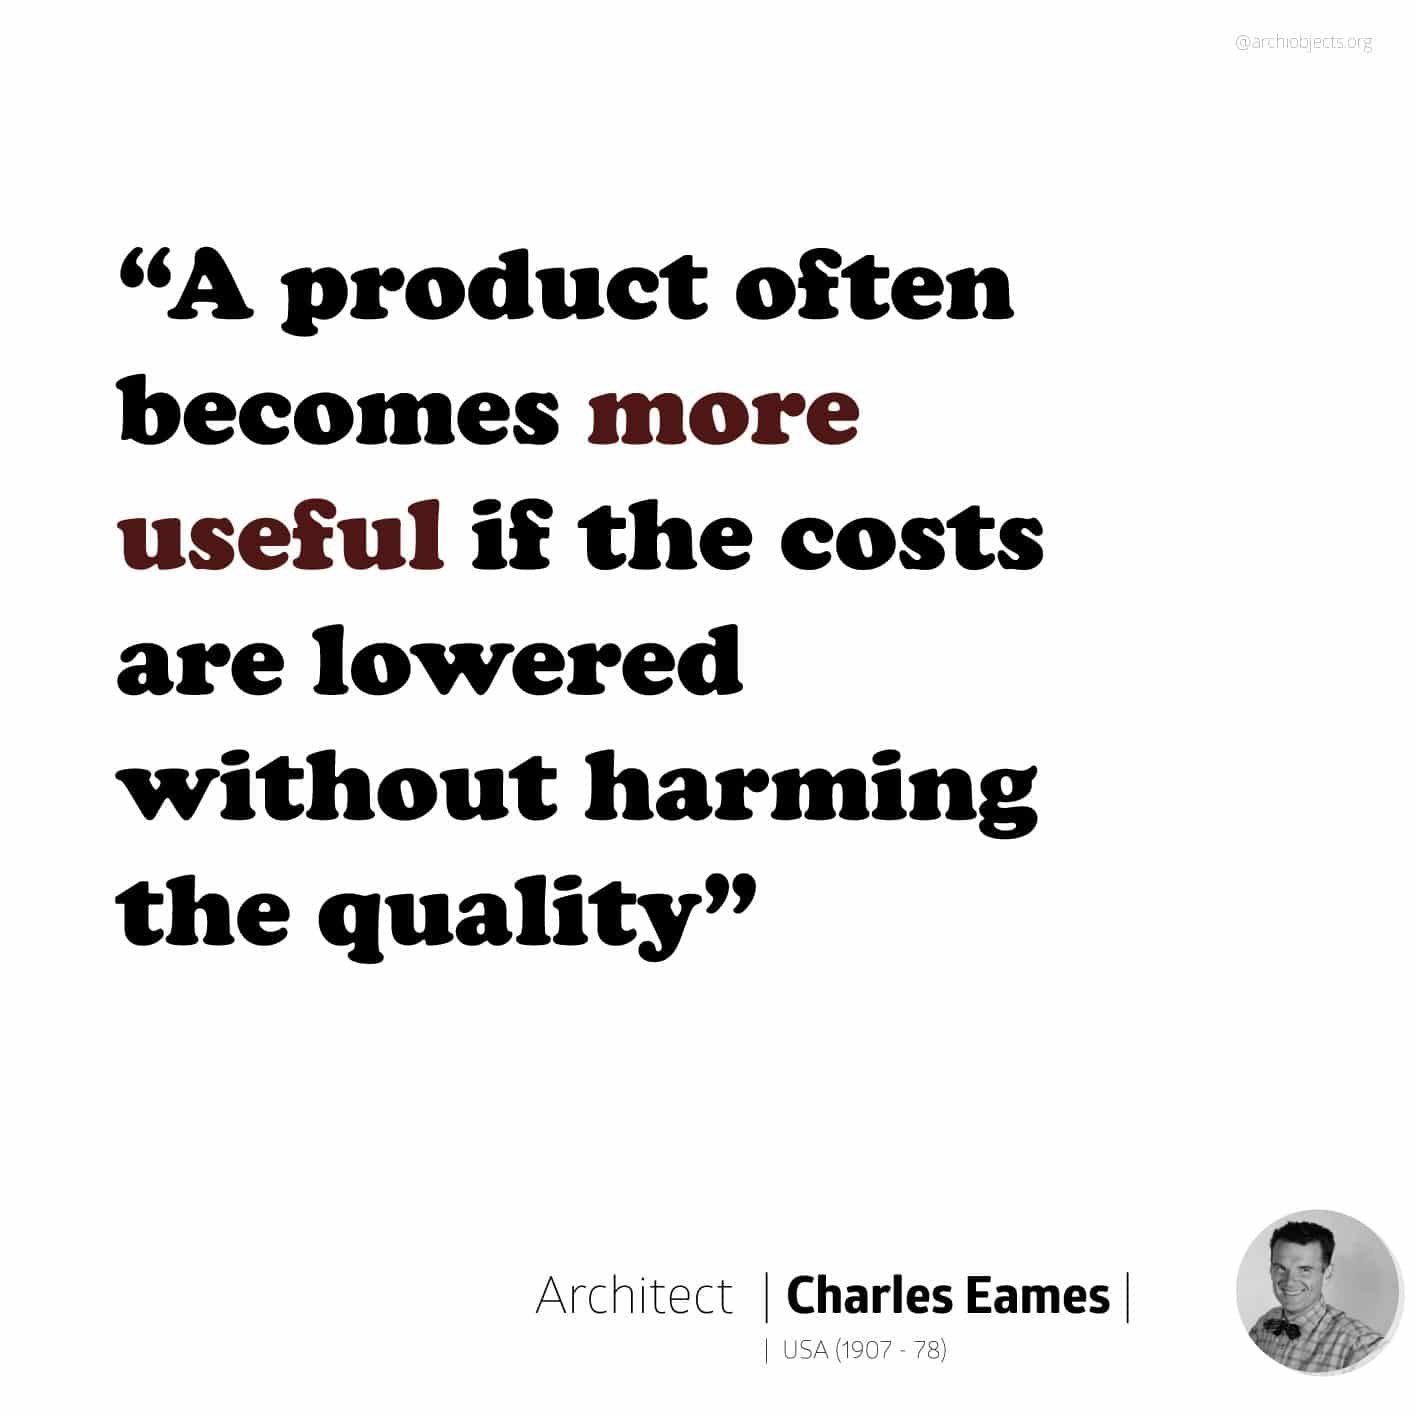 charles eames quote Architectural Quotes - Worth spreading Architects' voice